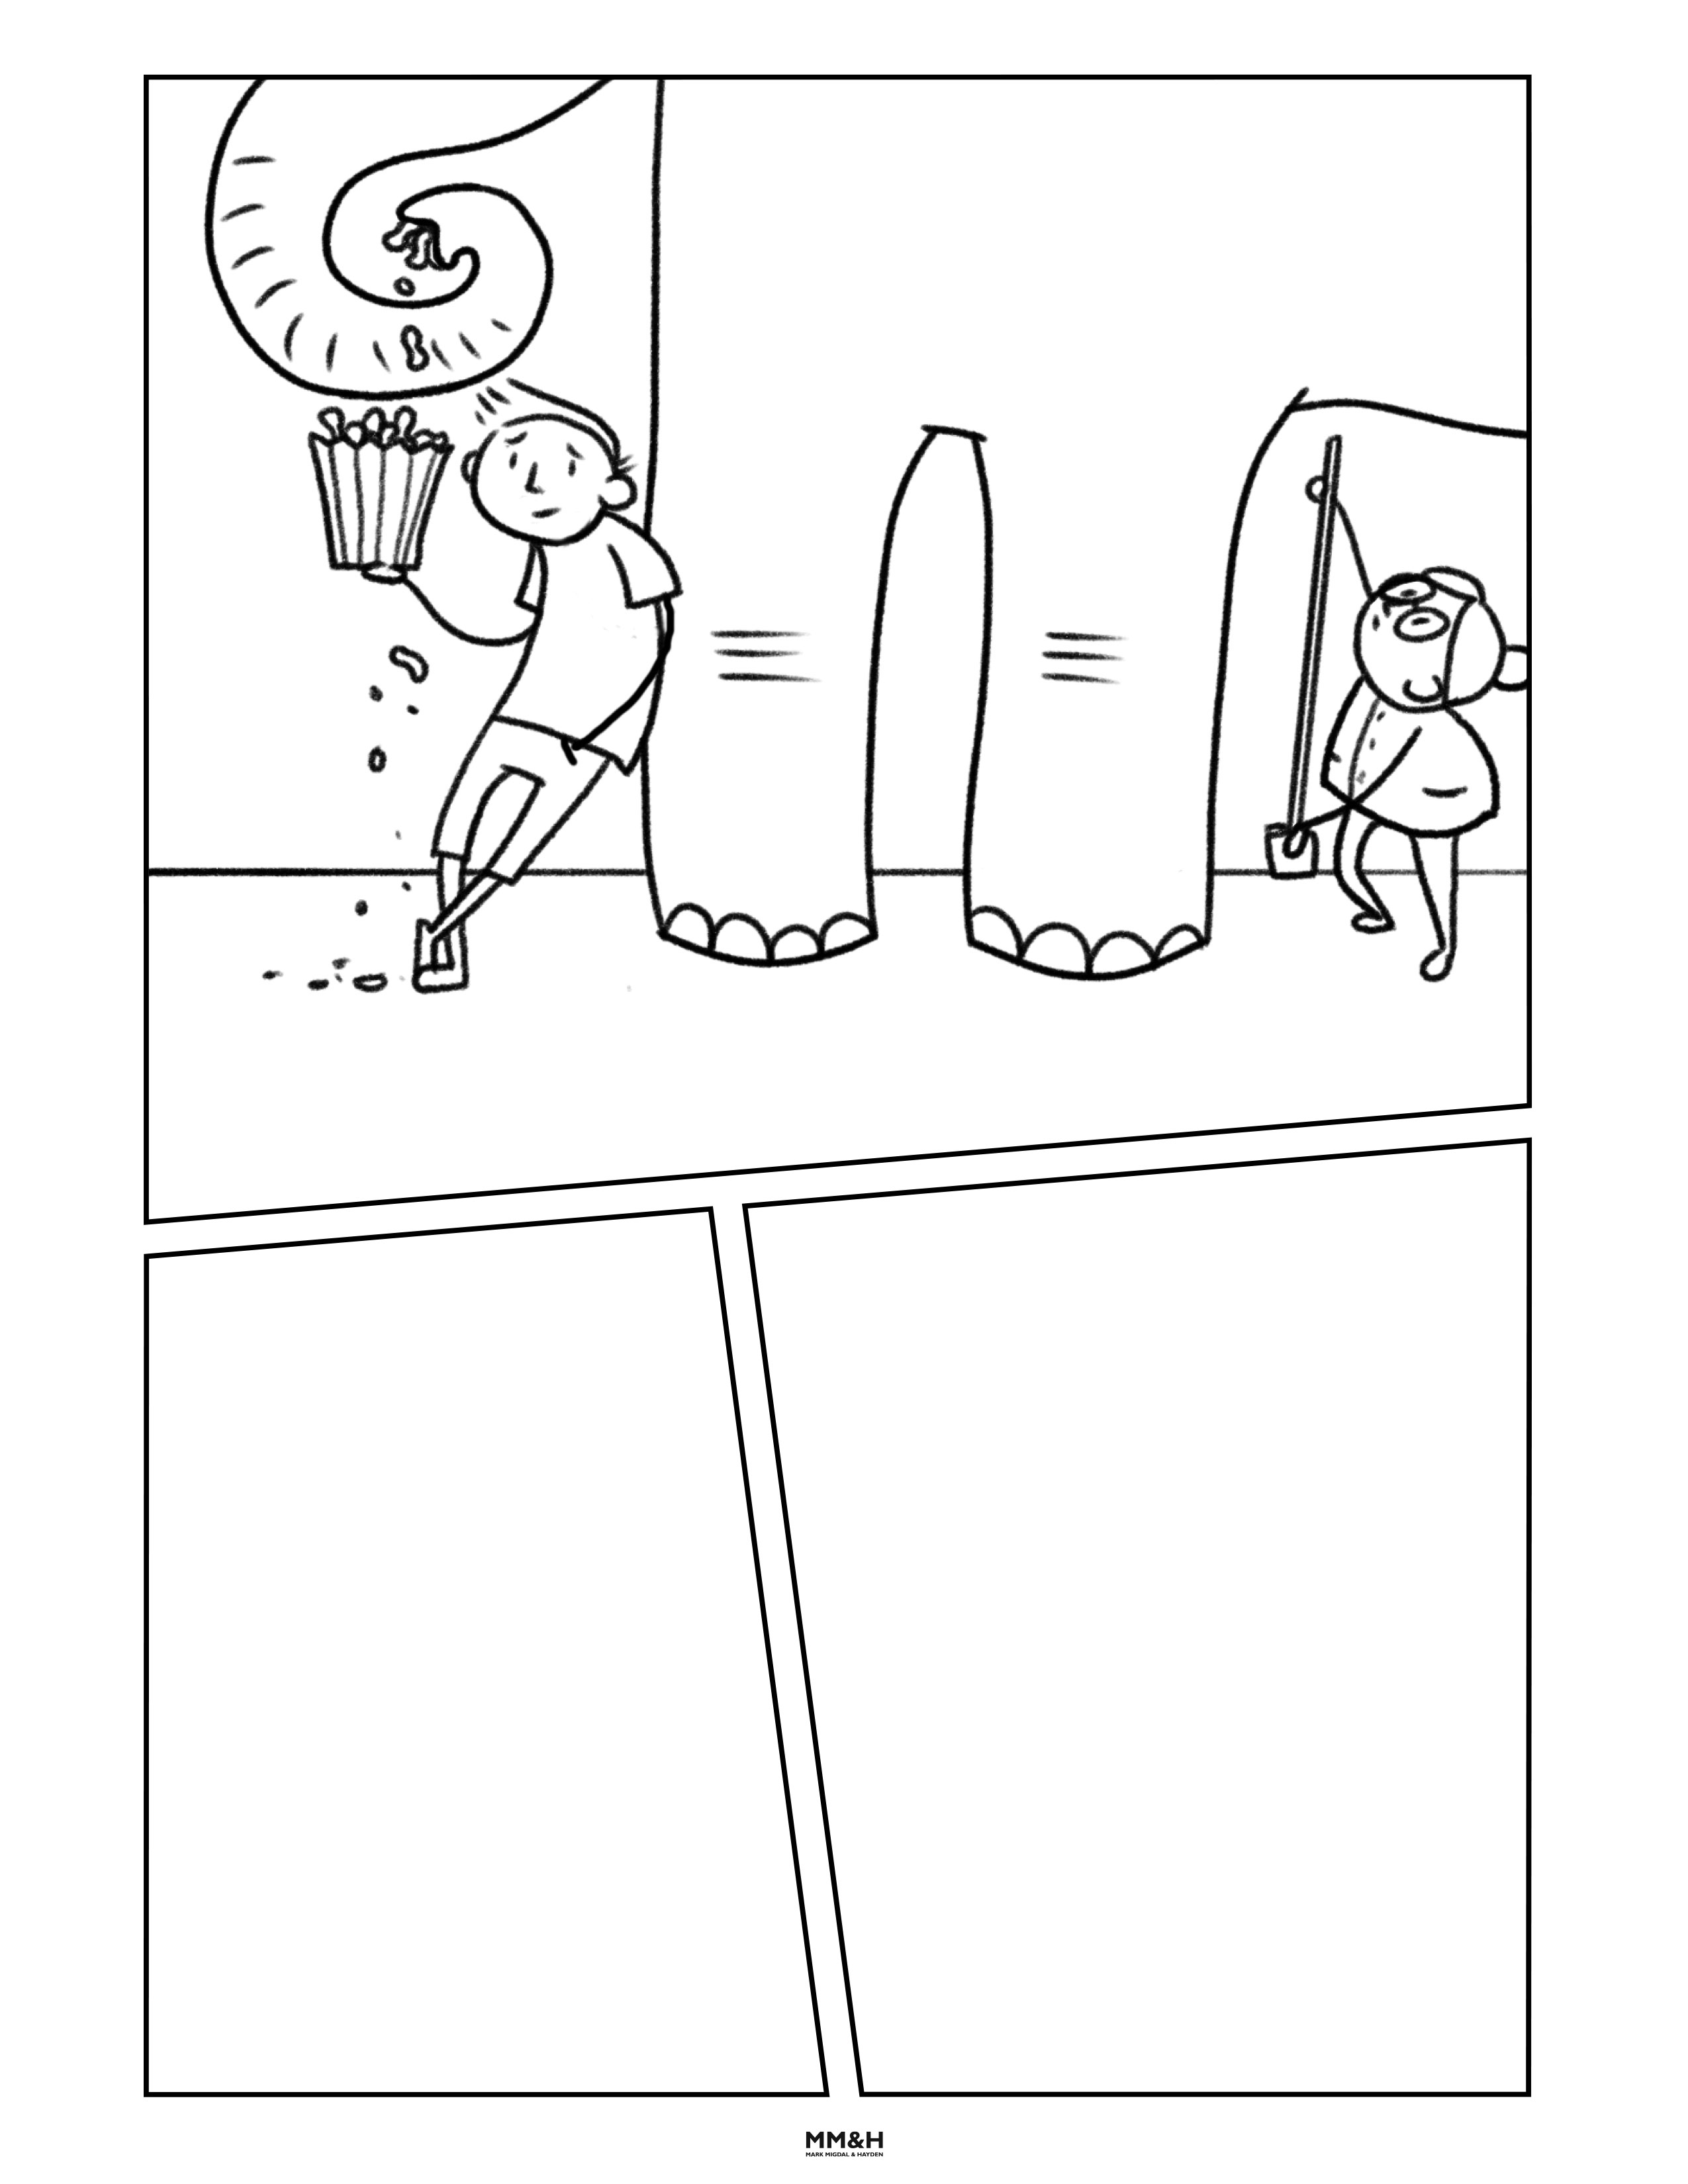 Comic-challenge-page-3 download